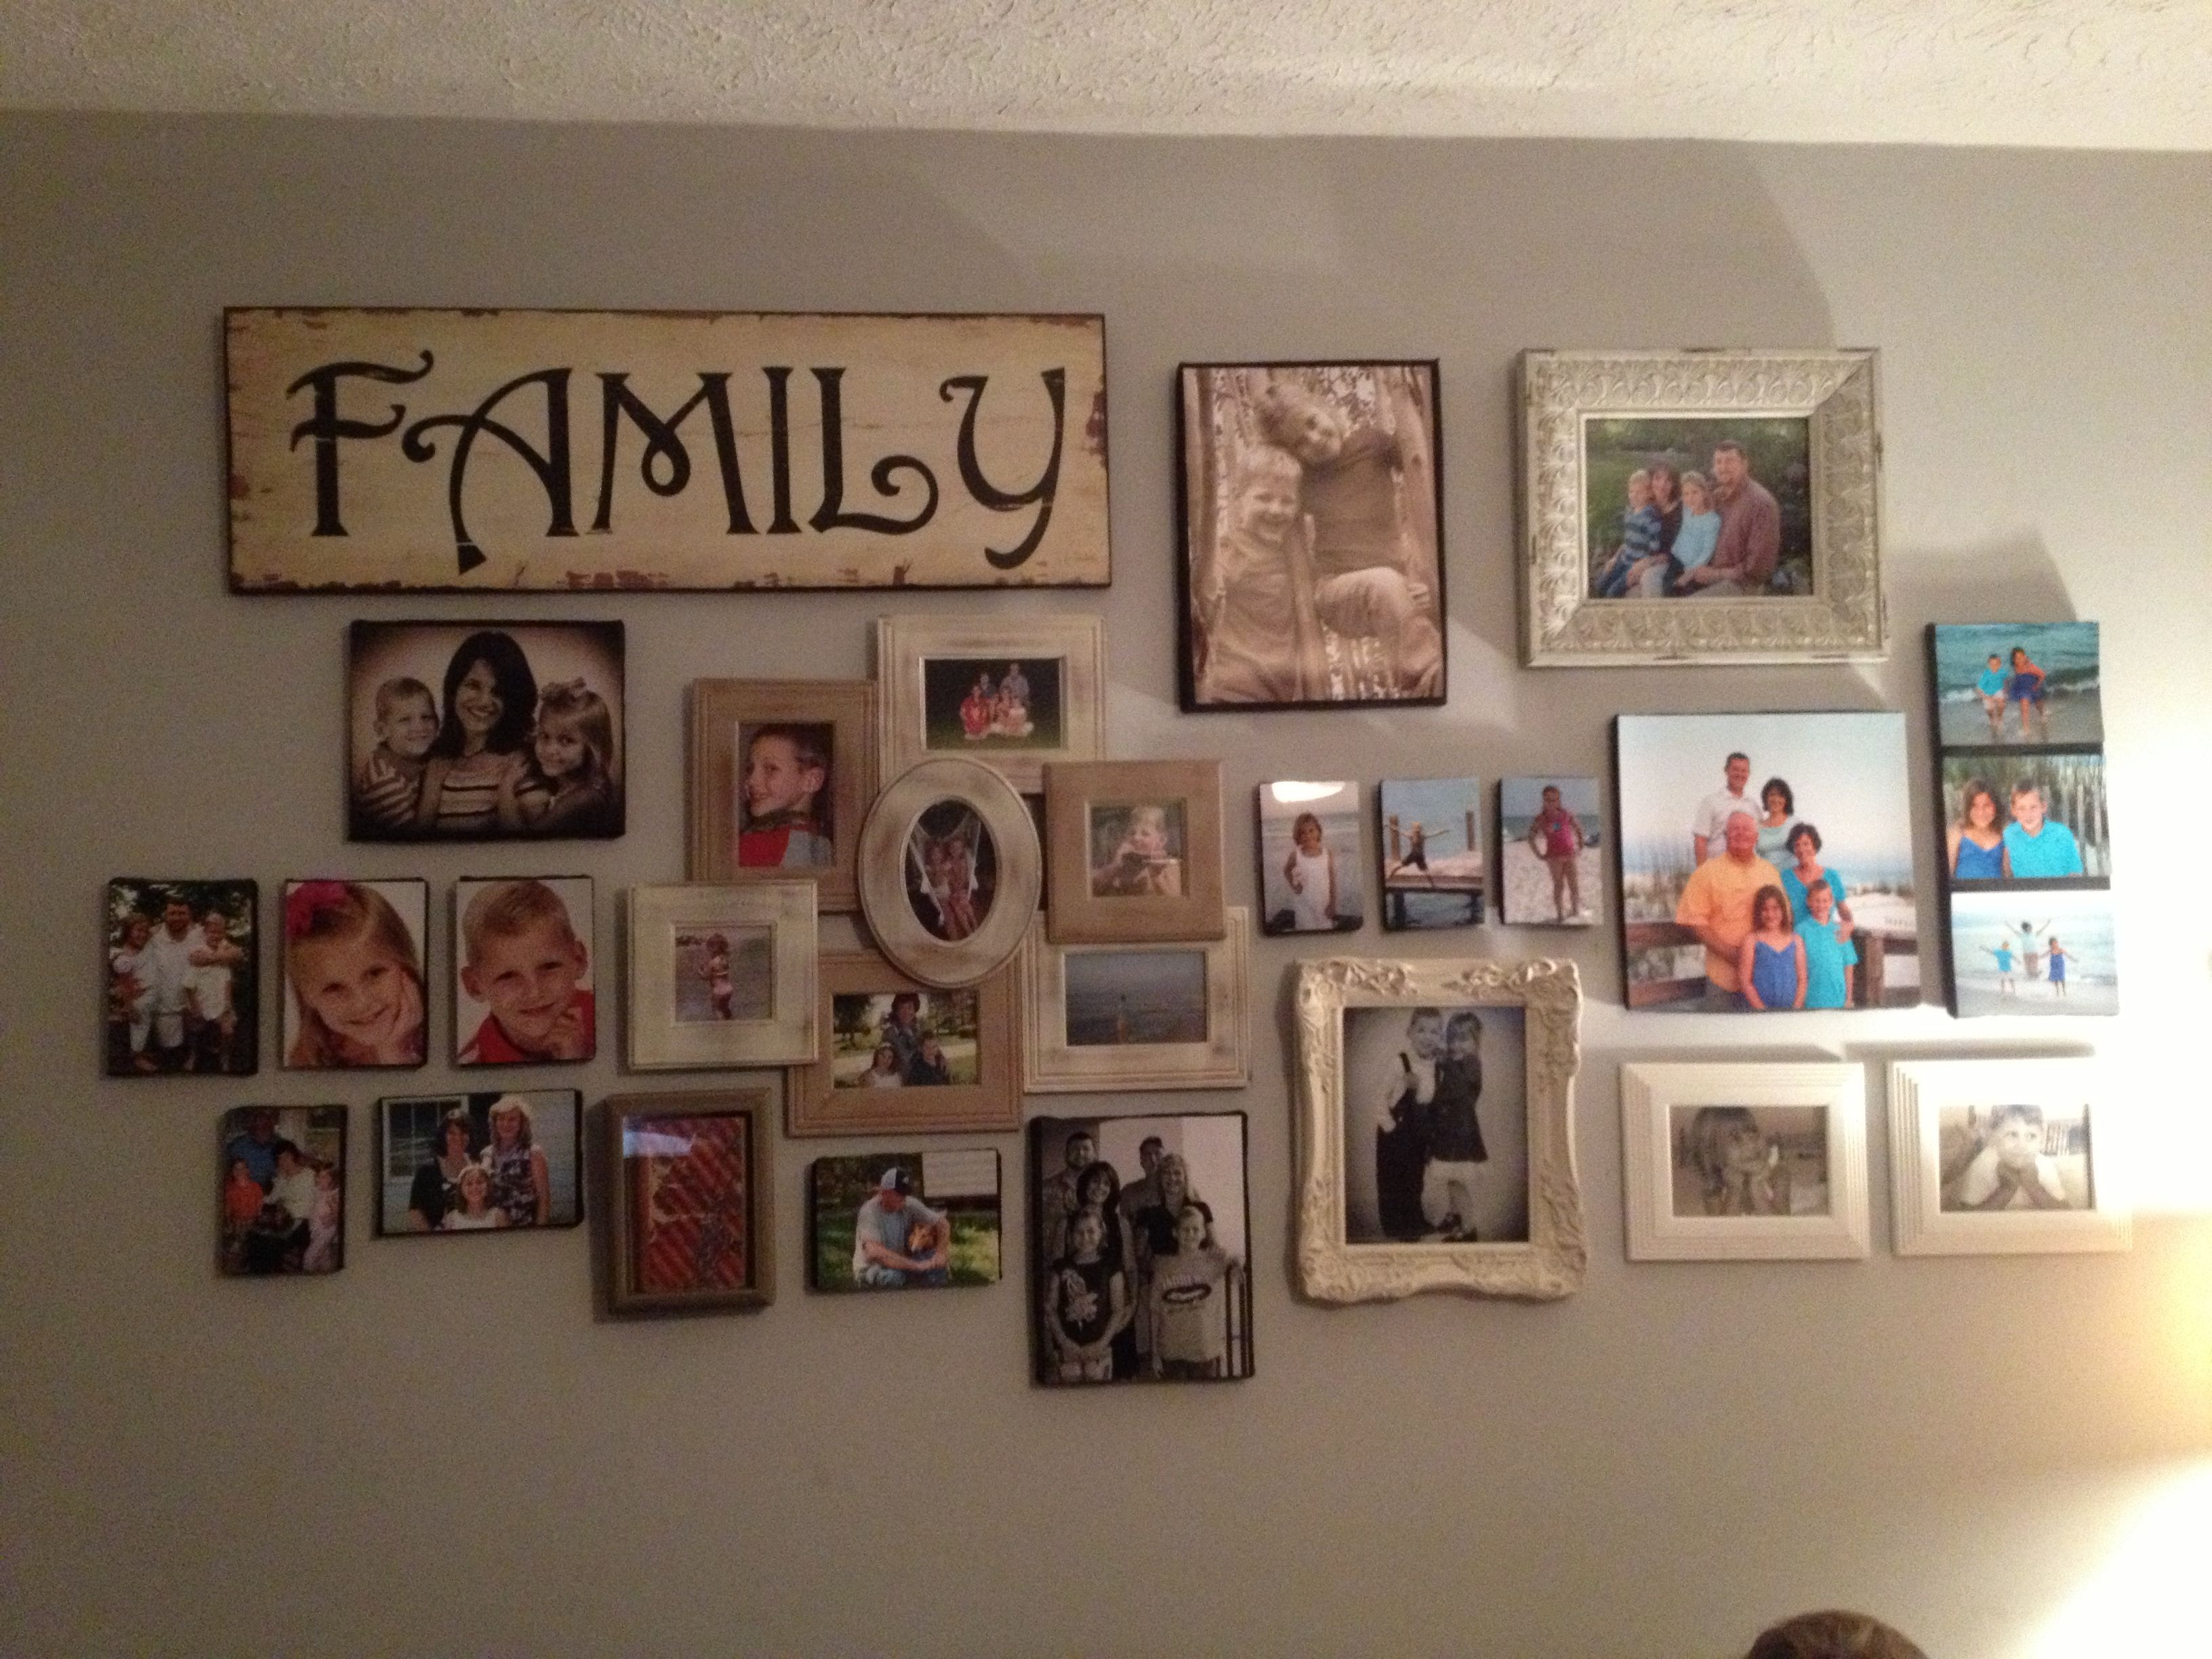 Family Pictures on Wall Ideas - WOW.com - Image Results | Misc ...